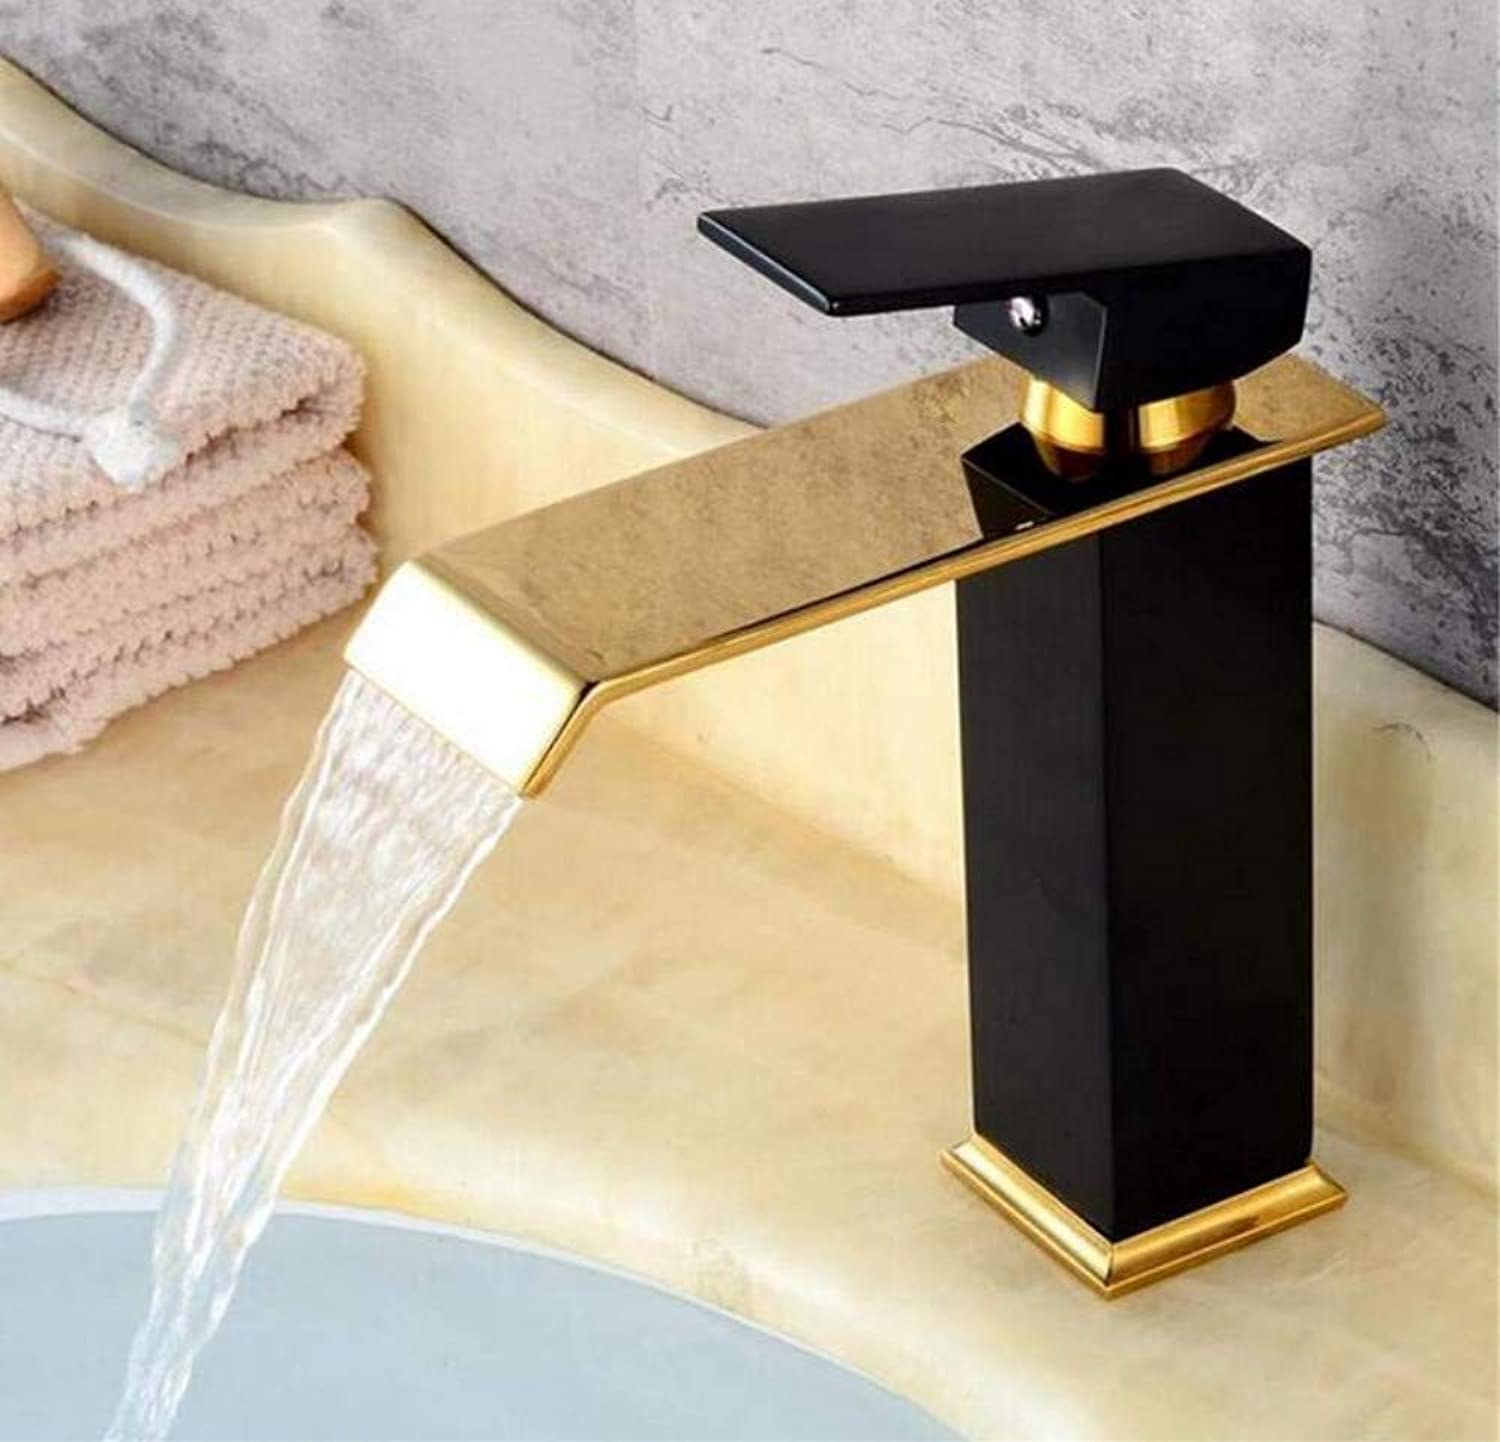 Brass Wall Faucet Chrome Brass Faucetfaucet Bathroom Faucet Bathroom Basin Mixer Tap with Hot and Cold Water Crane